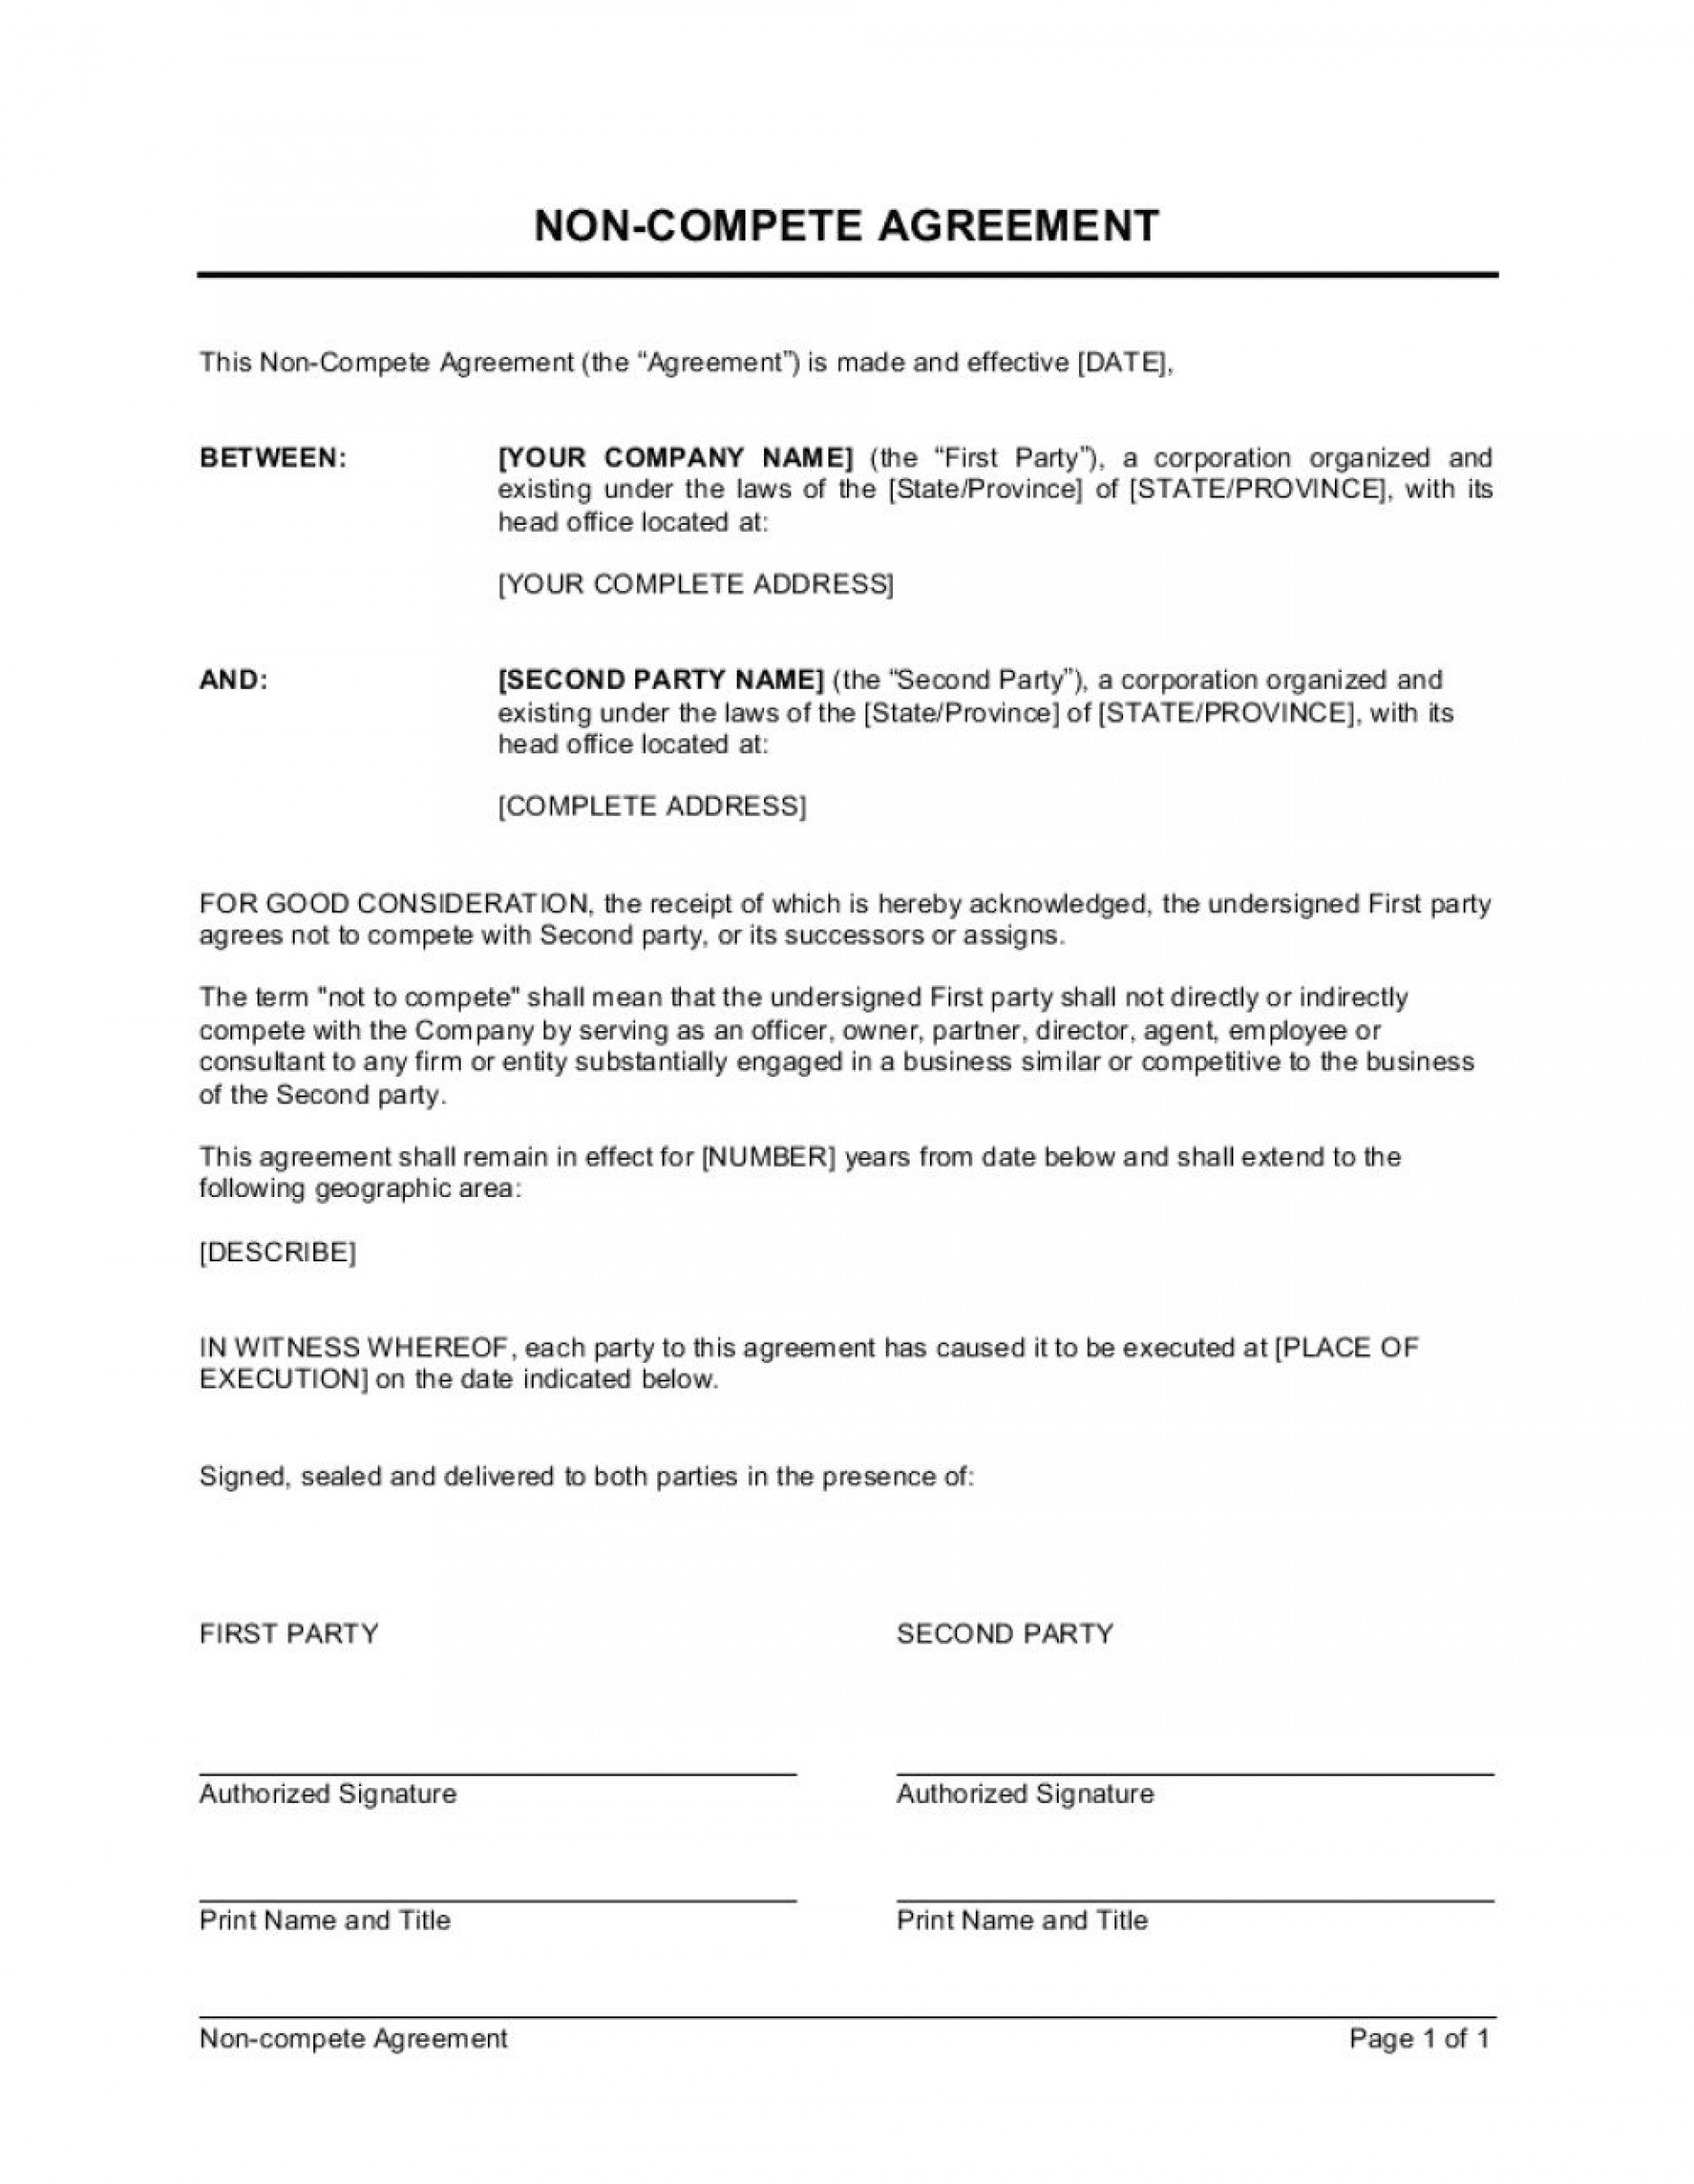 004 Unbelievable Non Compete Agreement Template Word Example  Microsoft Non-compete Free1920